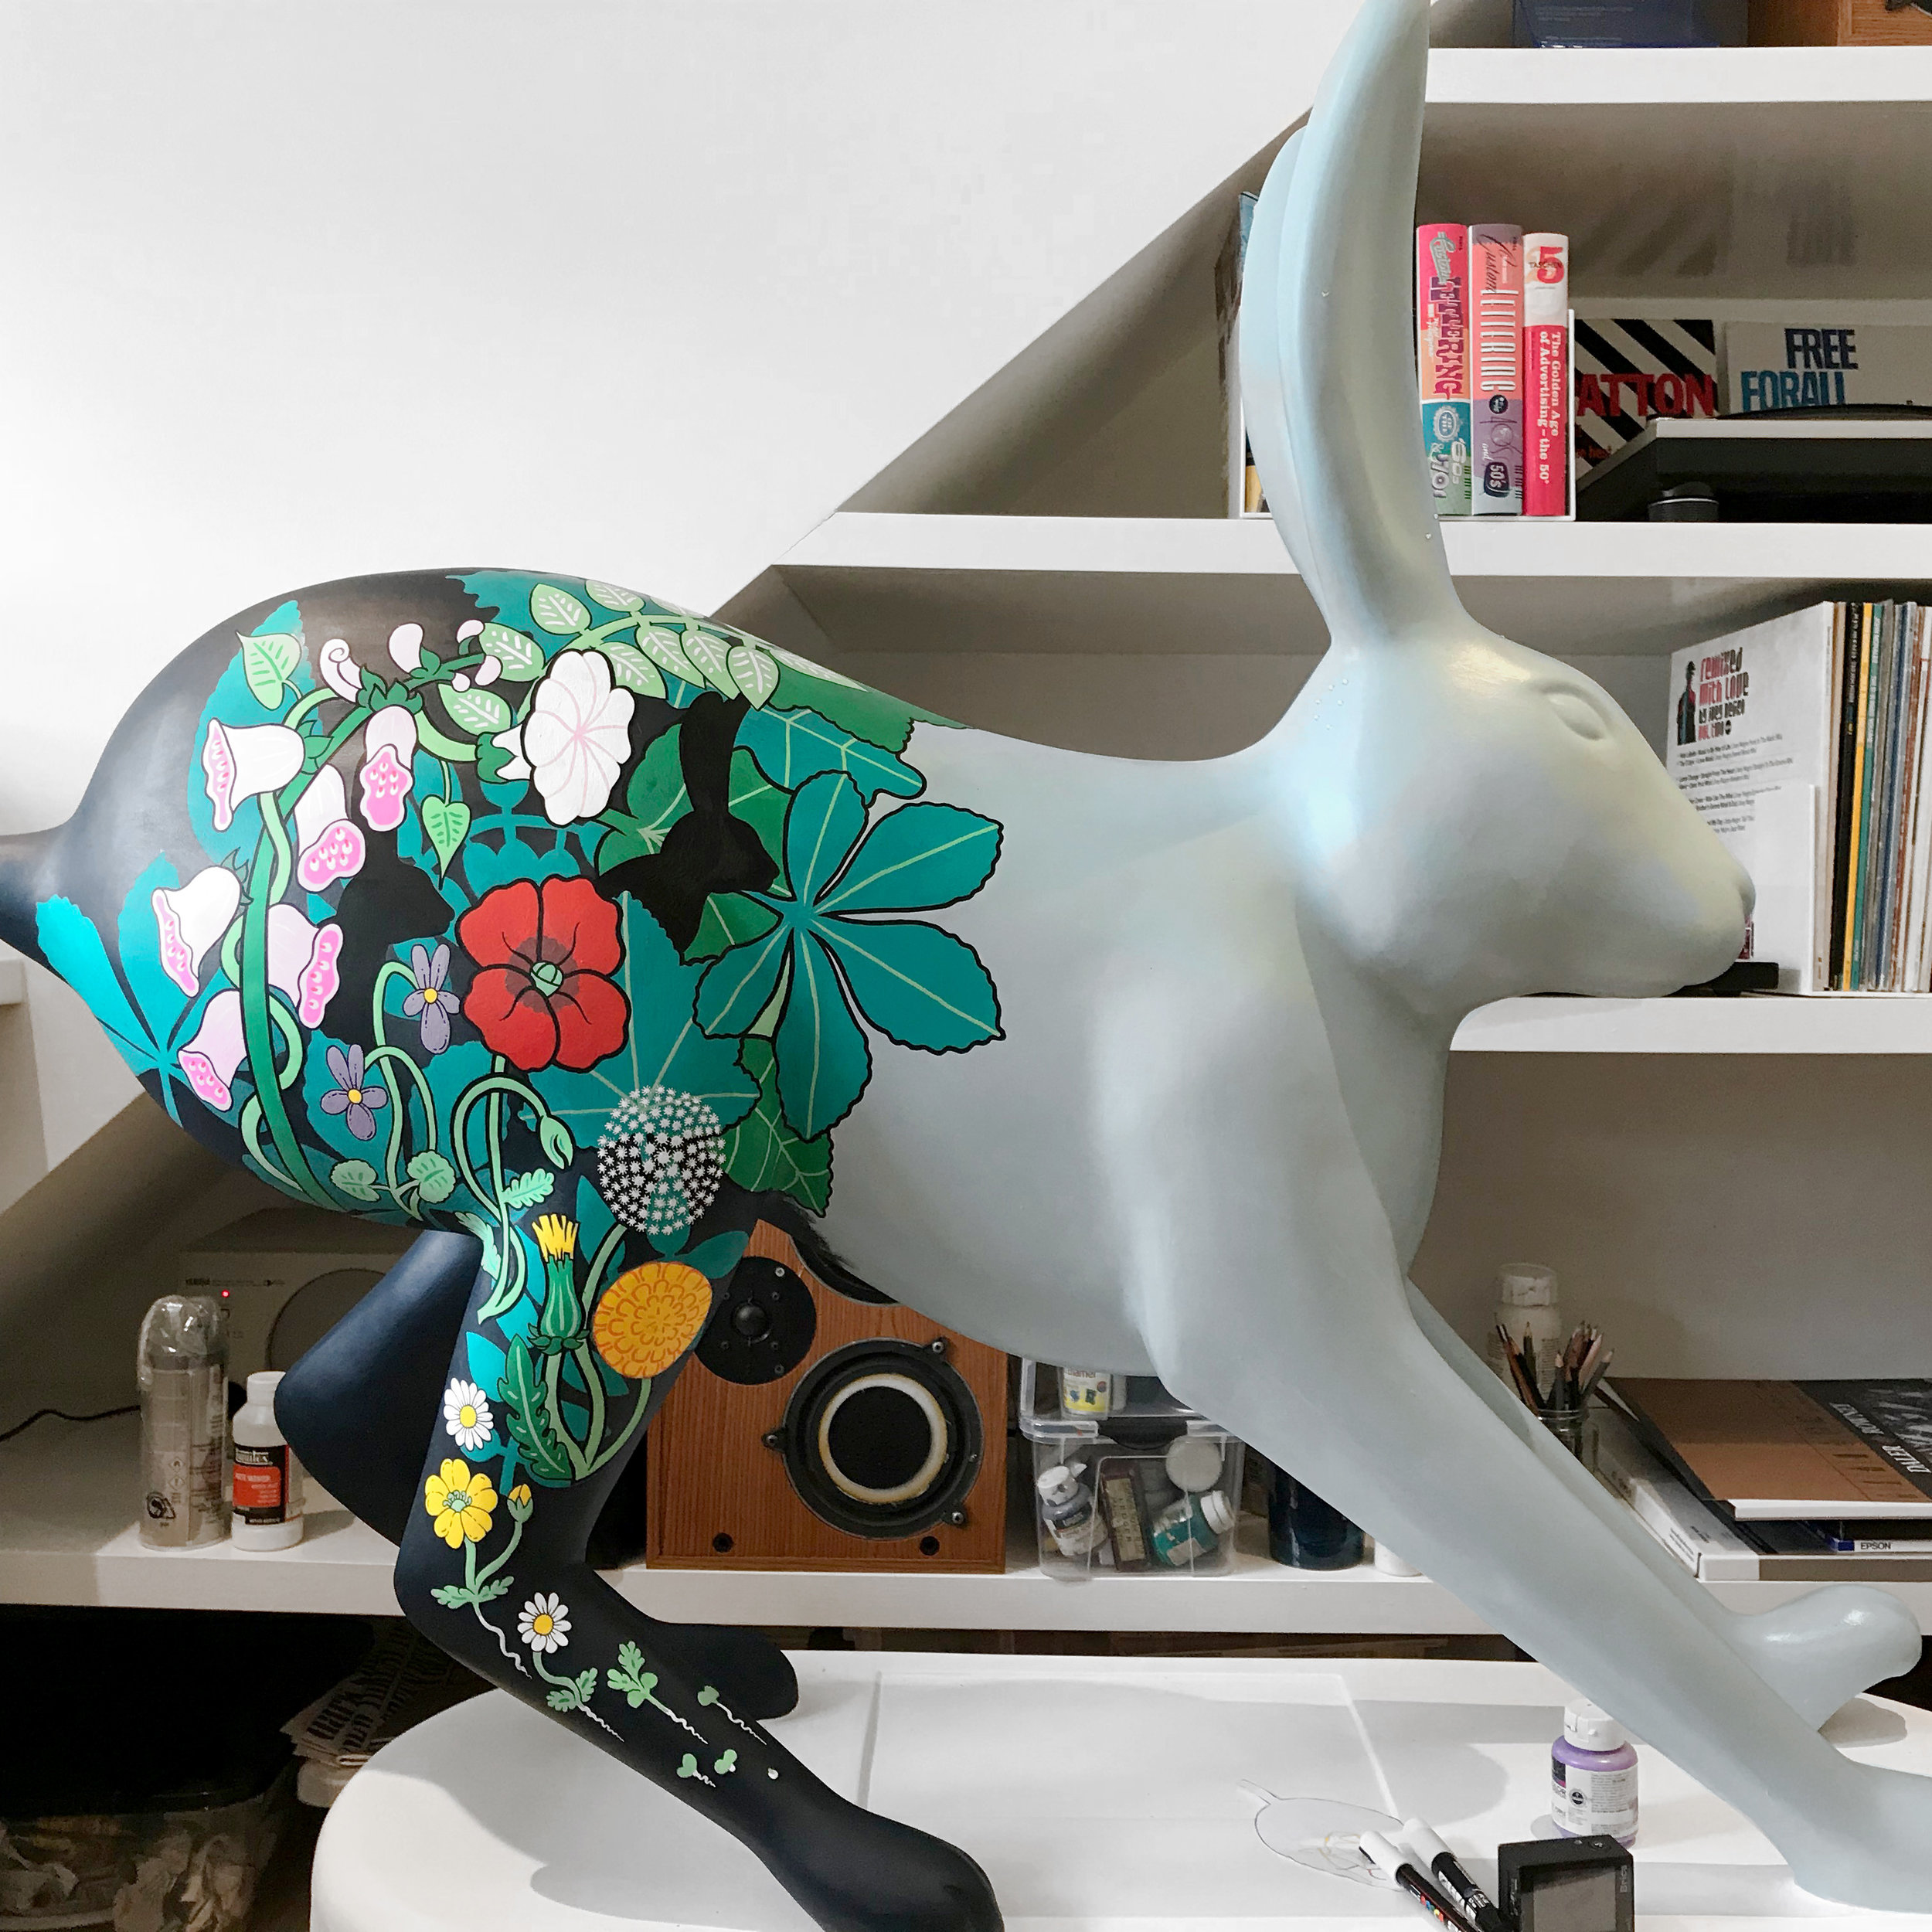 andy ward hare sculpture1.jpg